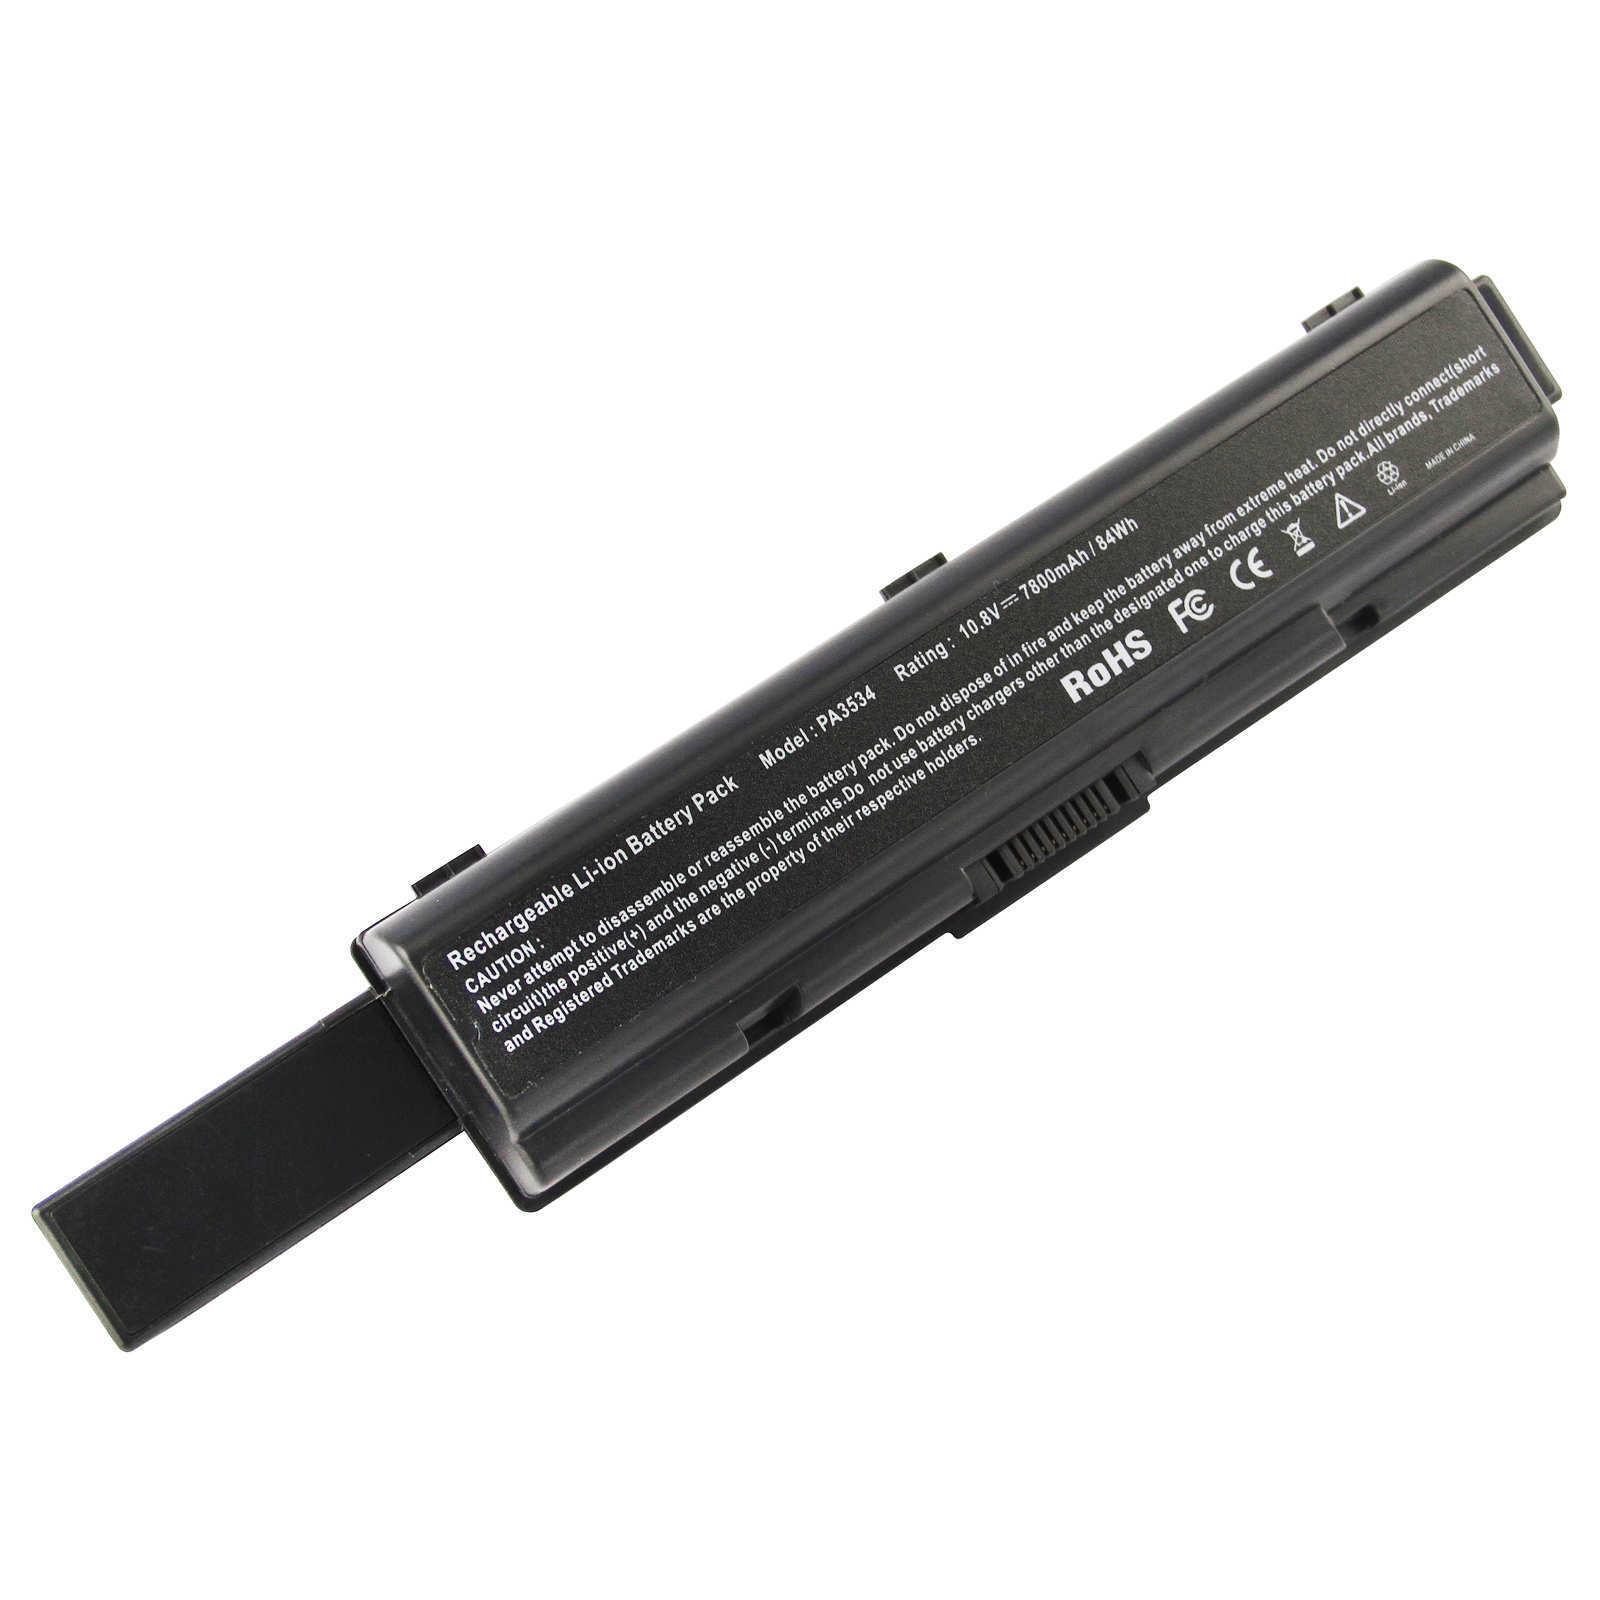 Replacement Toshiba Satellite A355 Battery